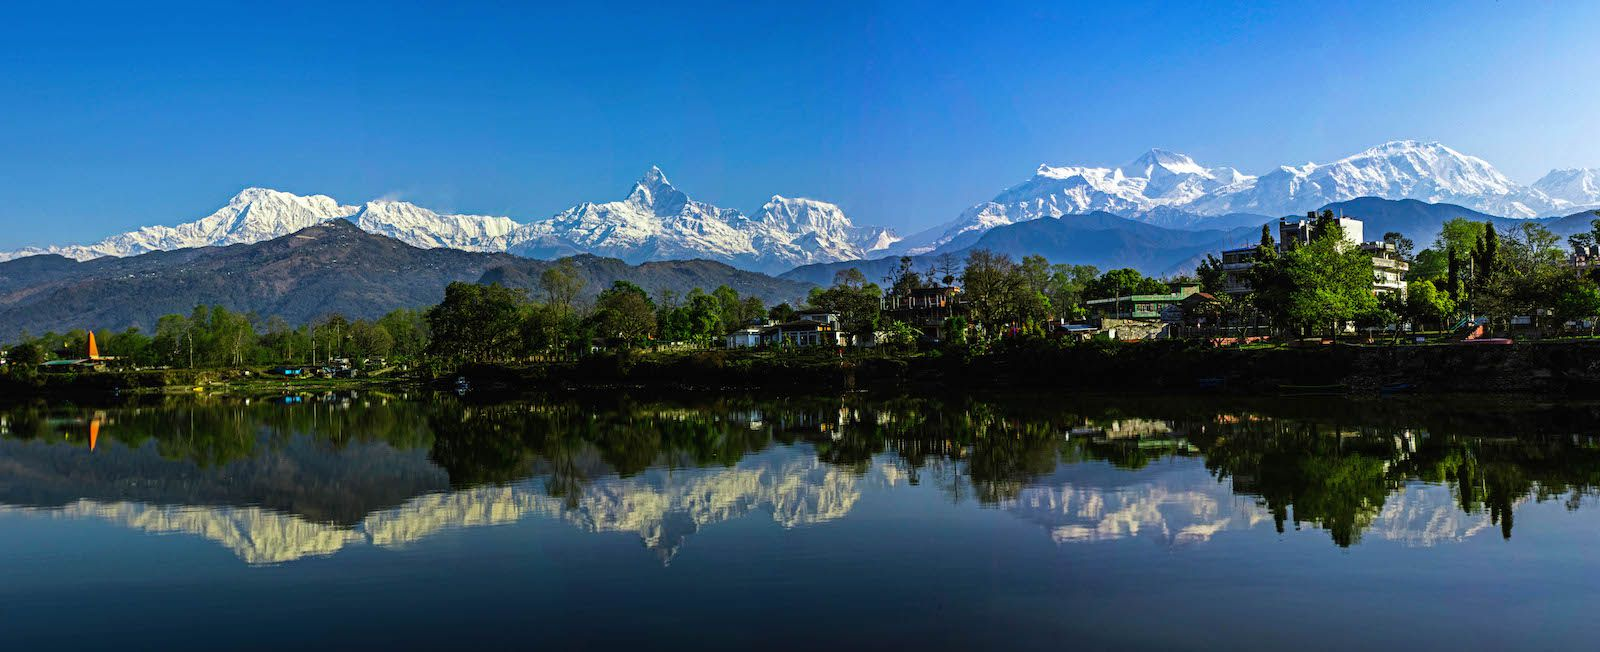 Fewa Lake, Wonders of Nepal